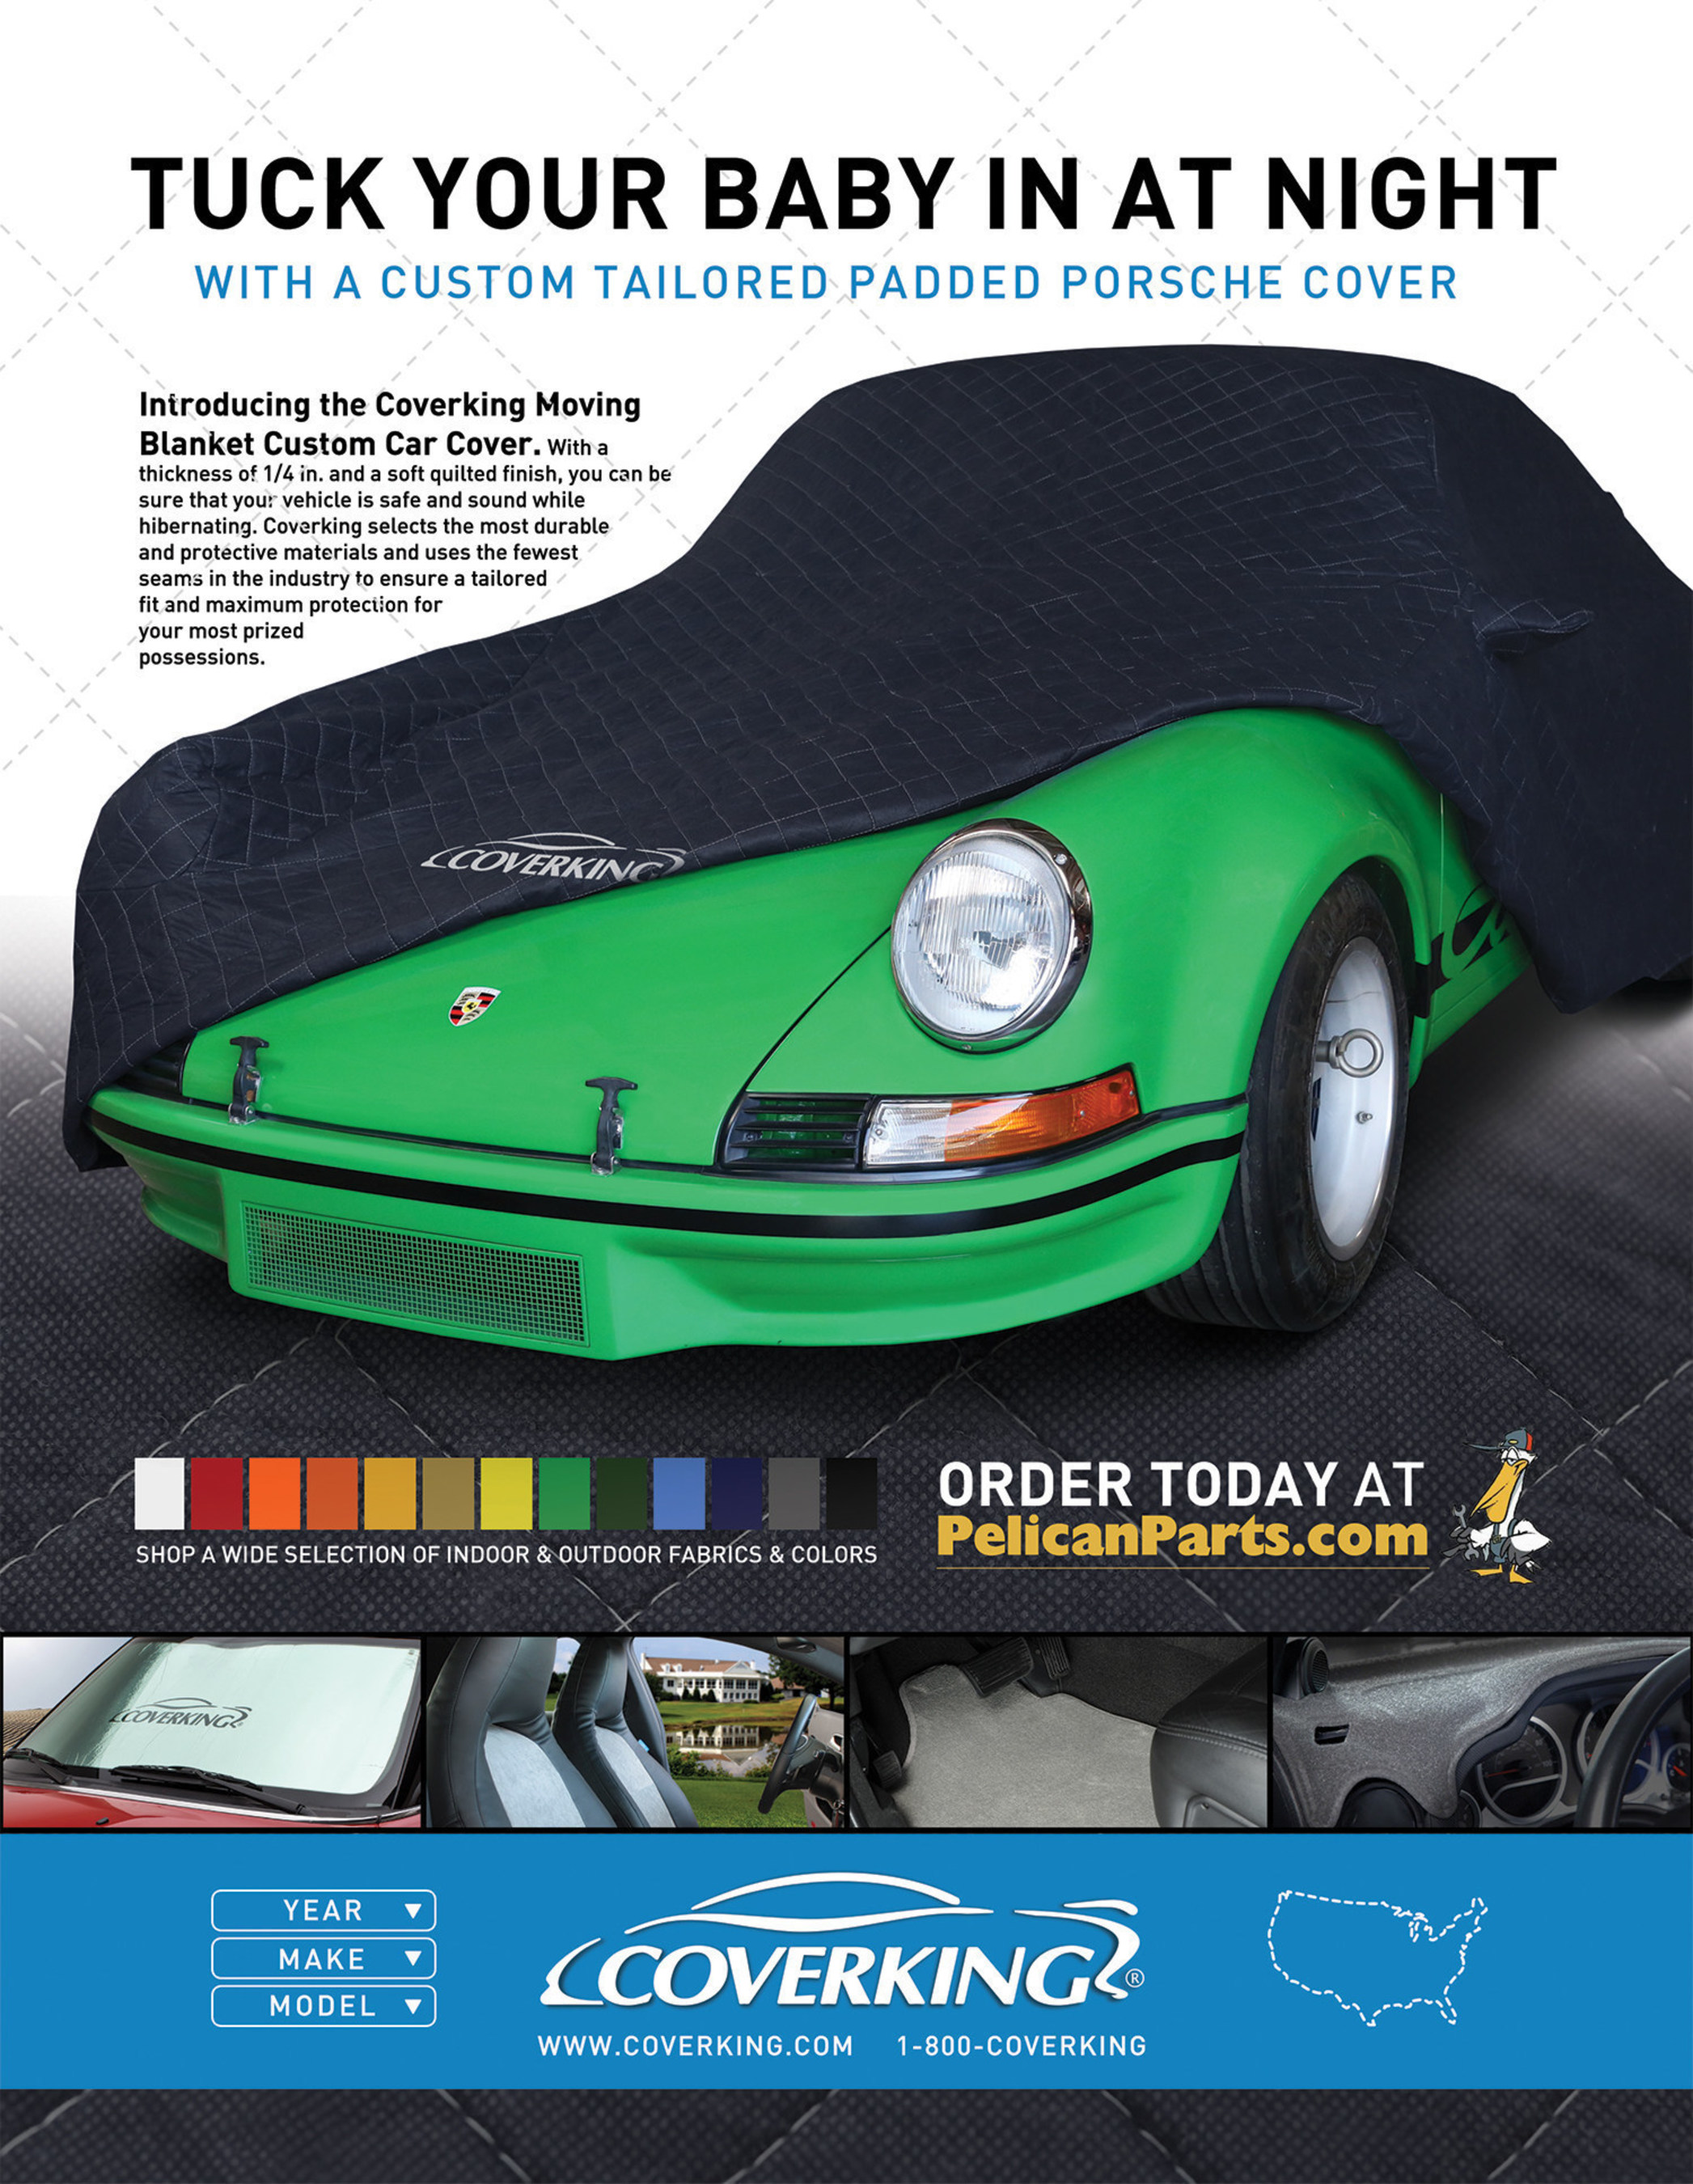 Introducing GarageGuard from Coverking, exclusively available at www.PelicanParts.com